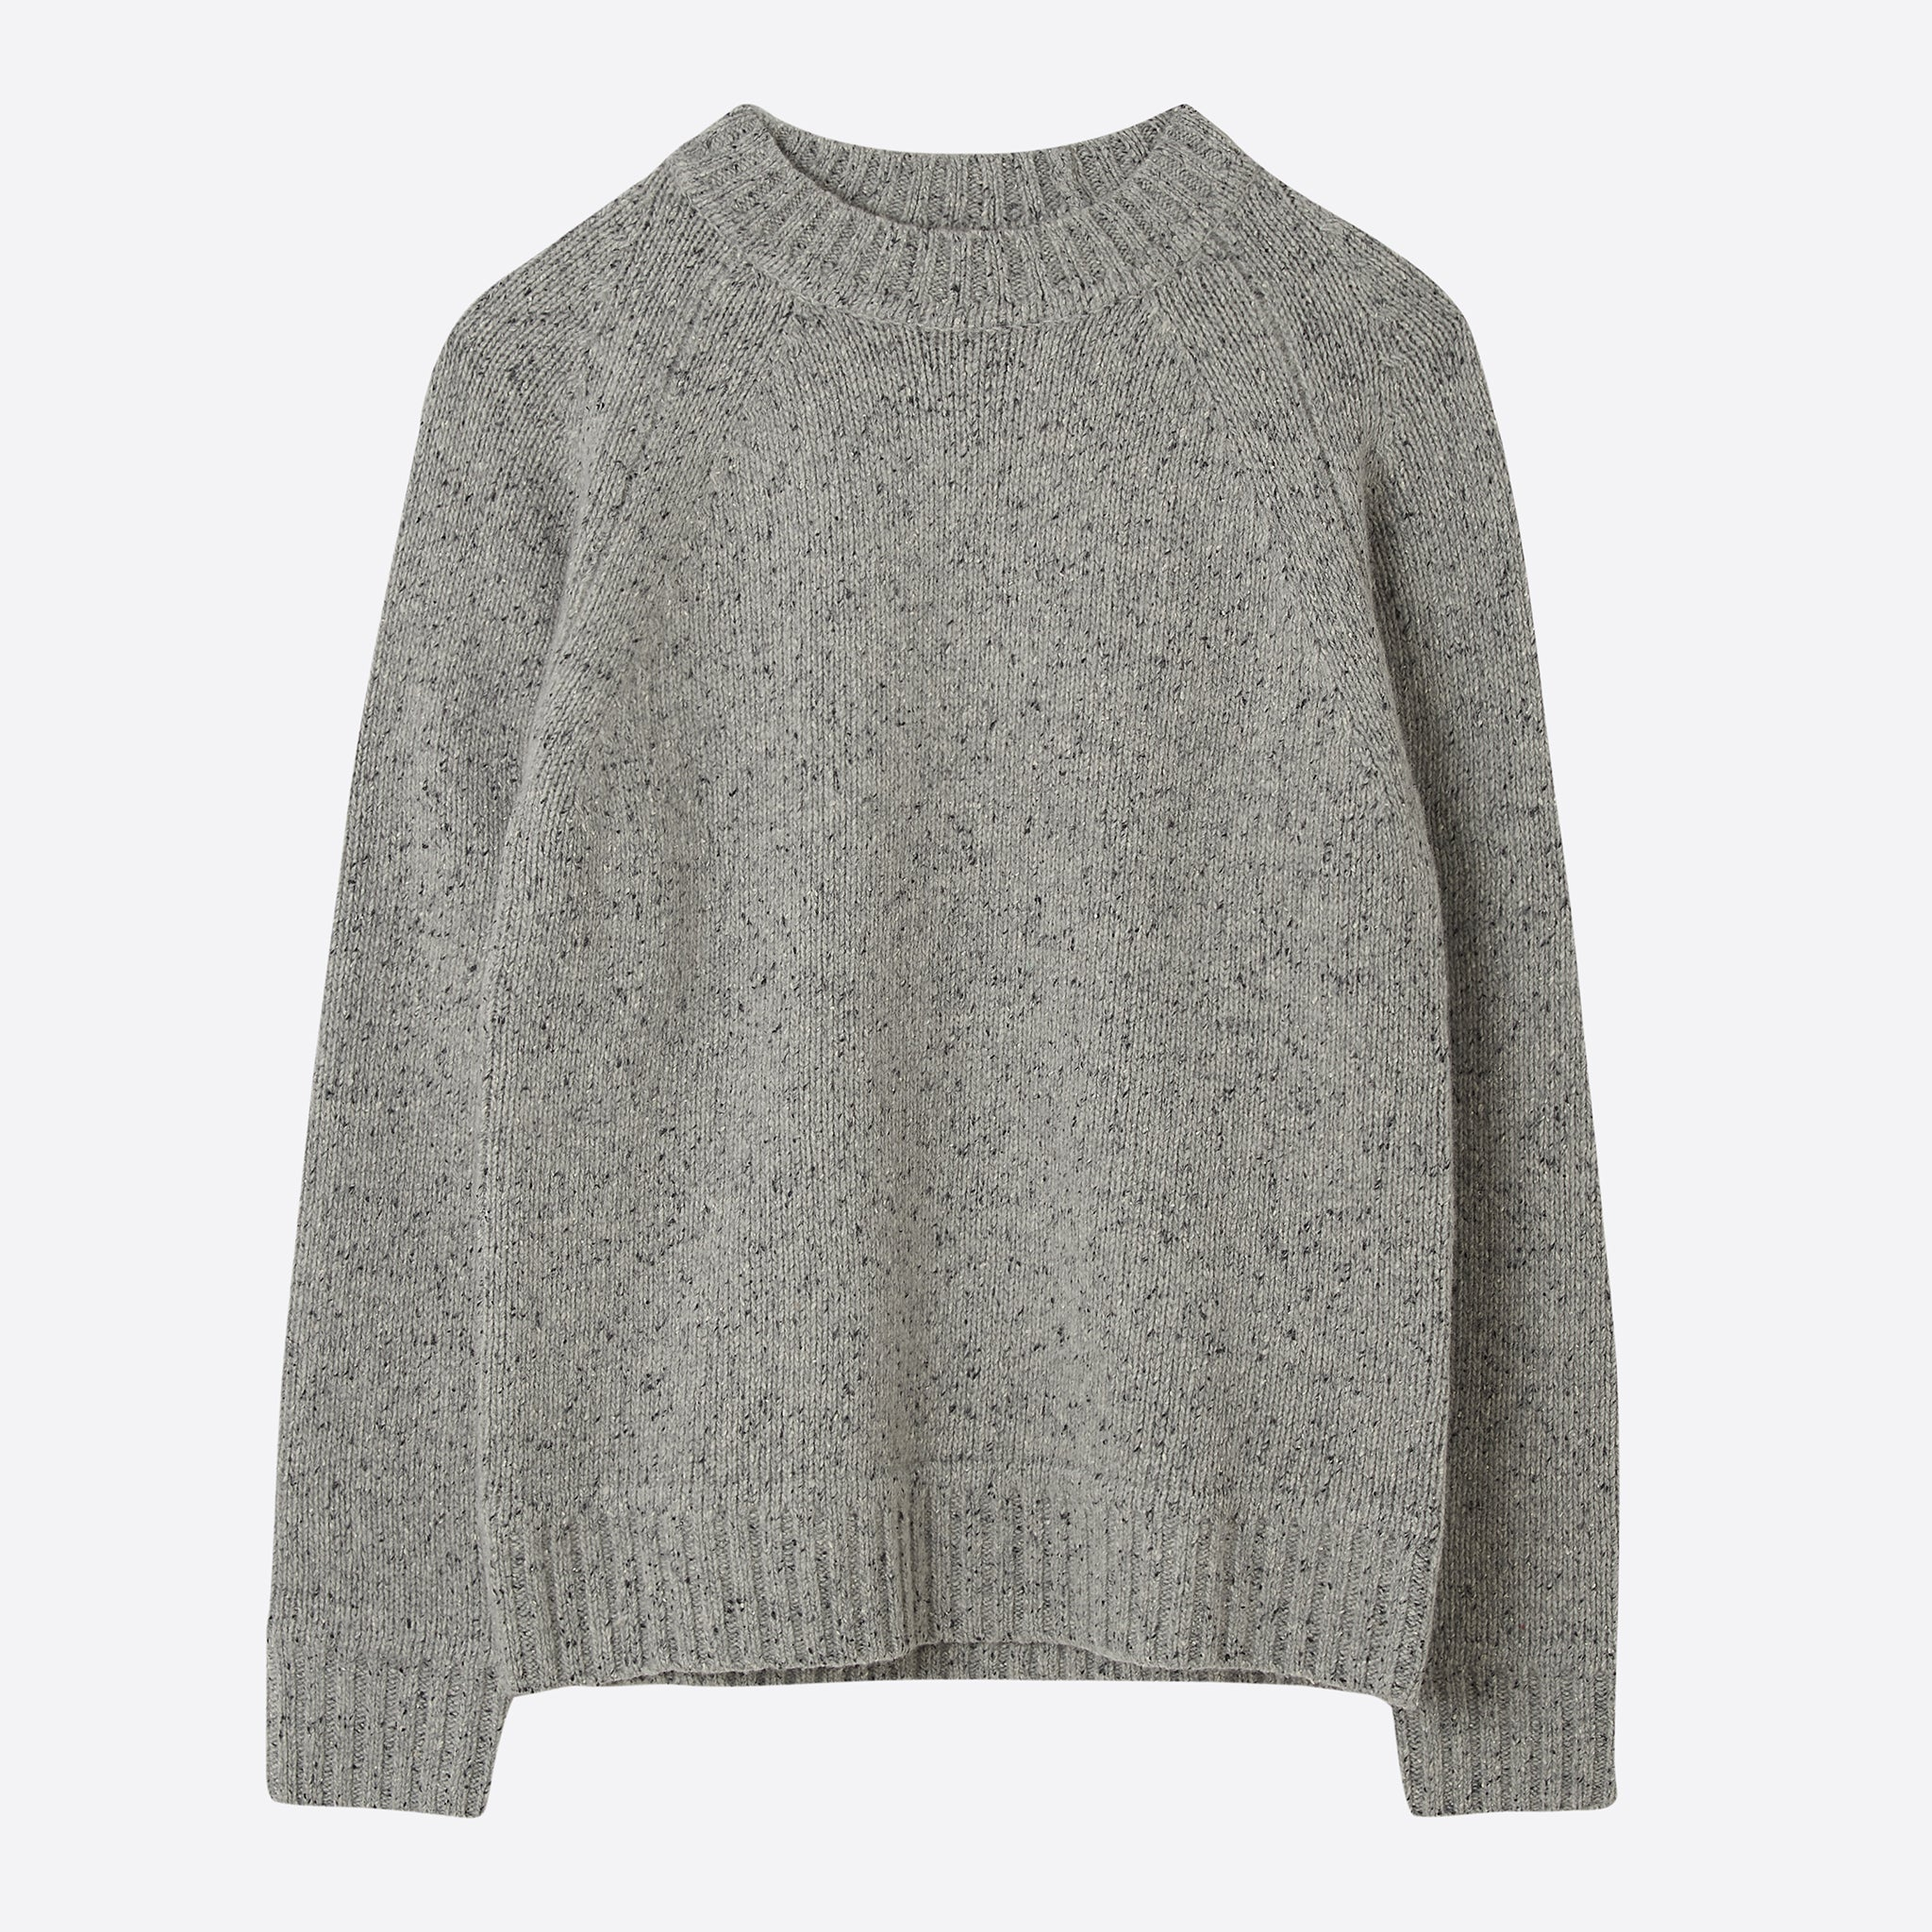 Saturdays NYC Miguel Speckles Sweater in Ash Heather